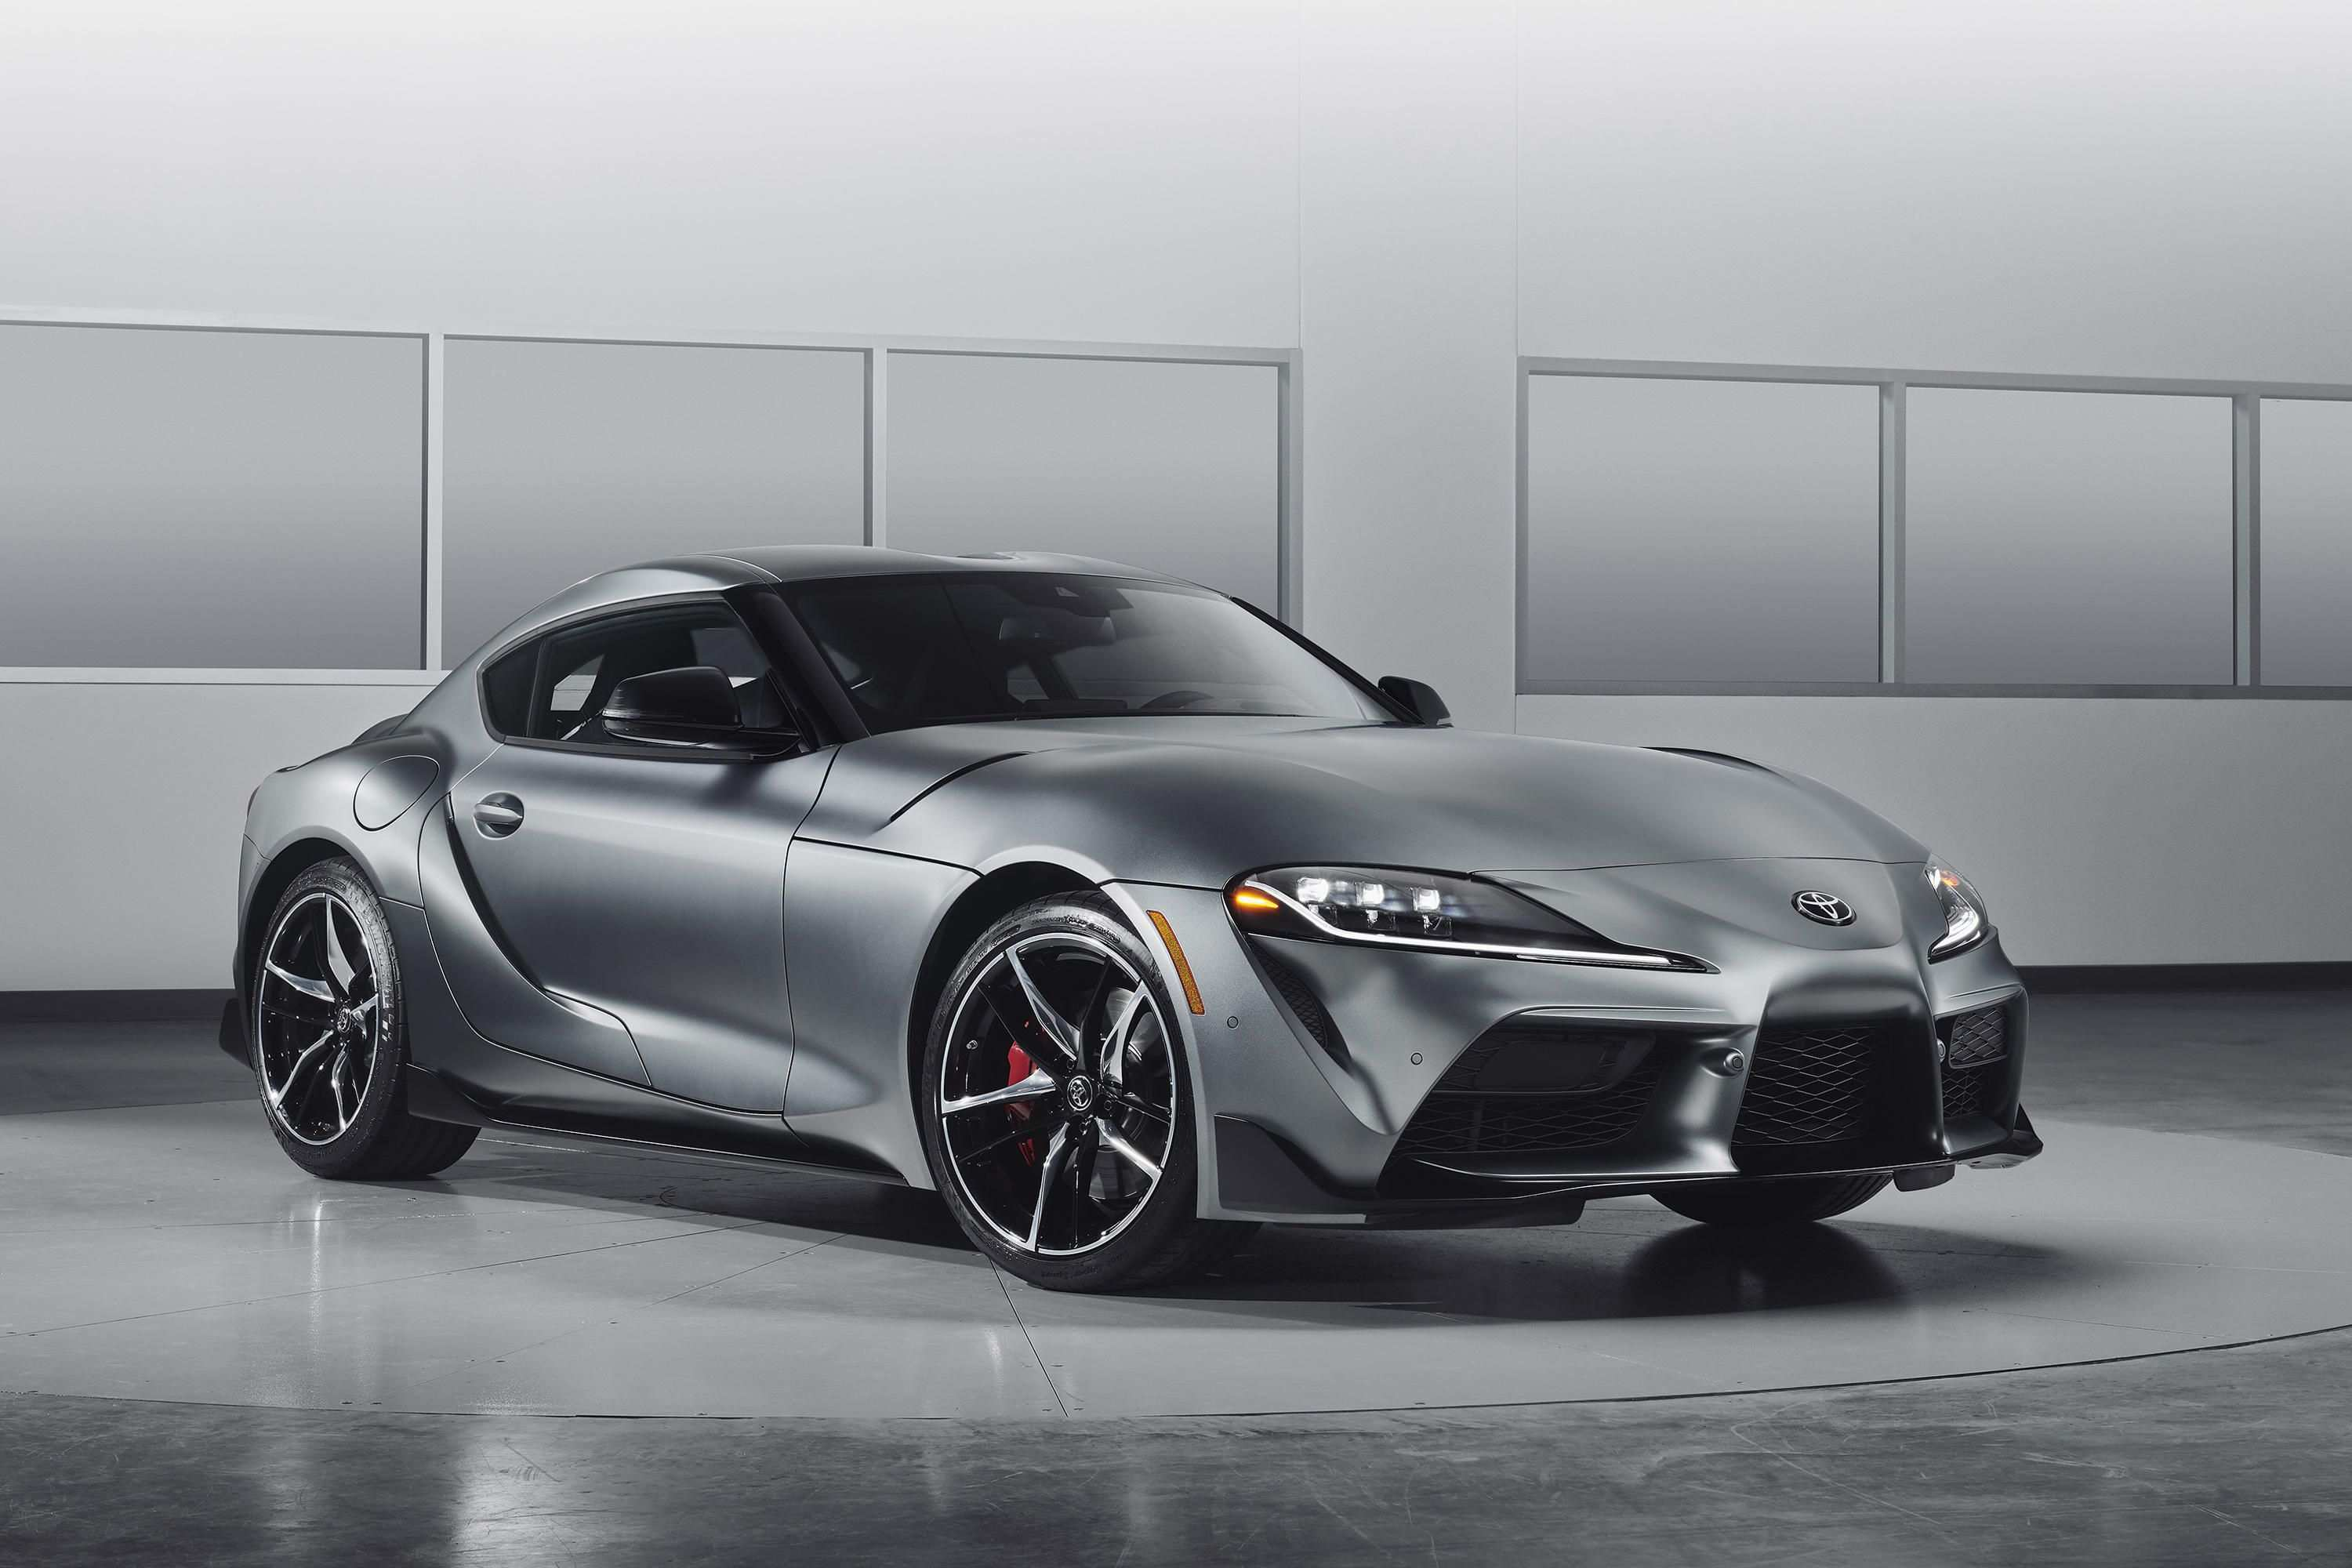 51 The Best 2019 Toyota Supra Estimated Price New Review